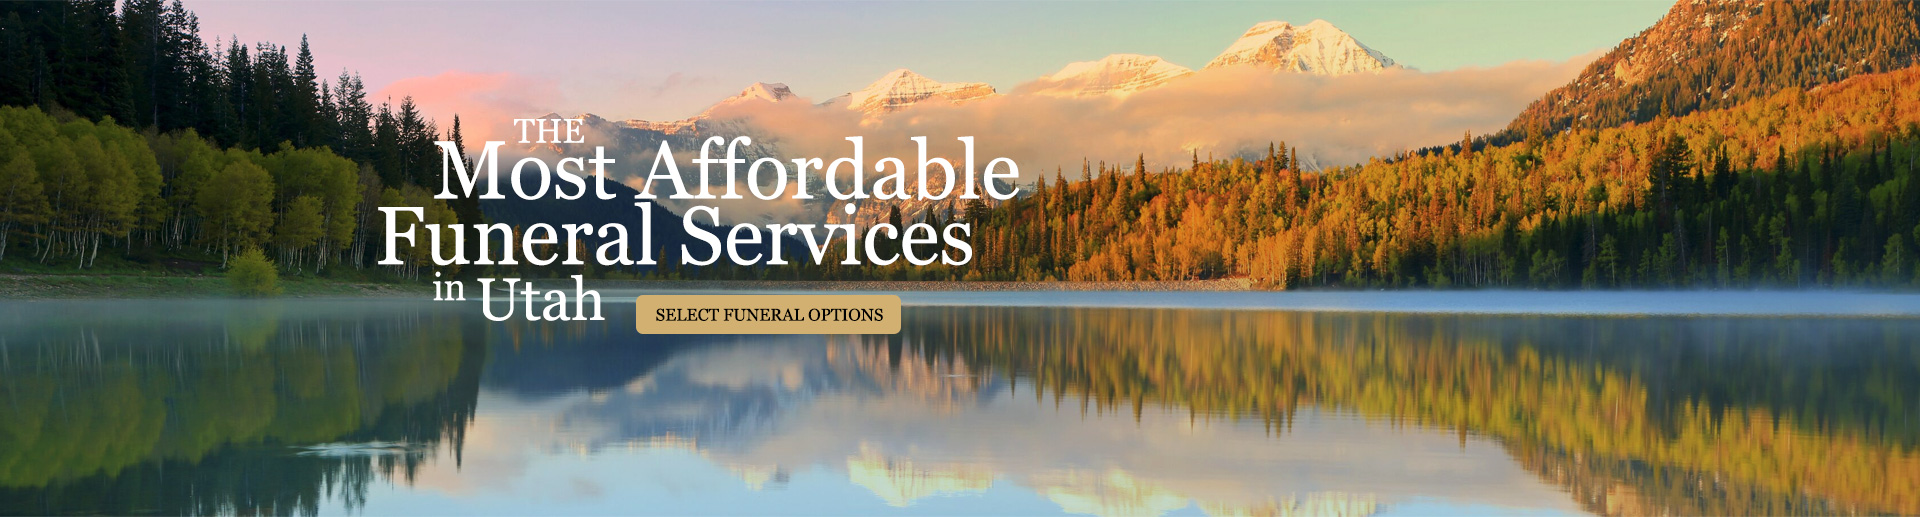 The most affordable services in utah graphic